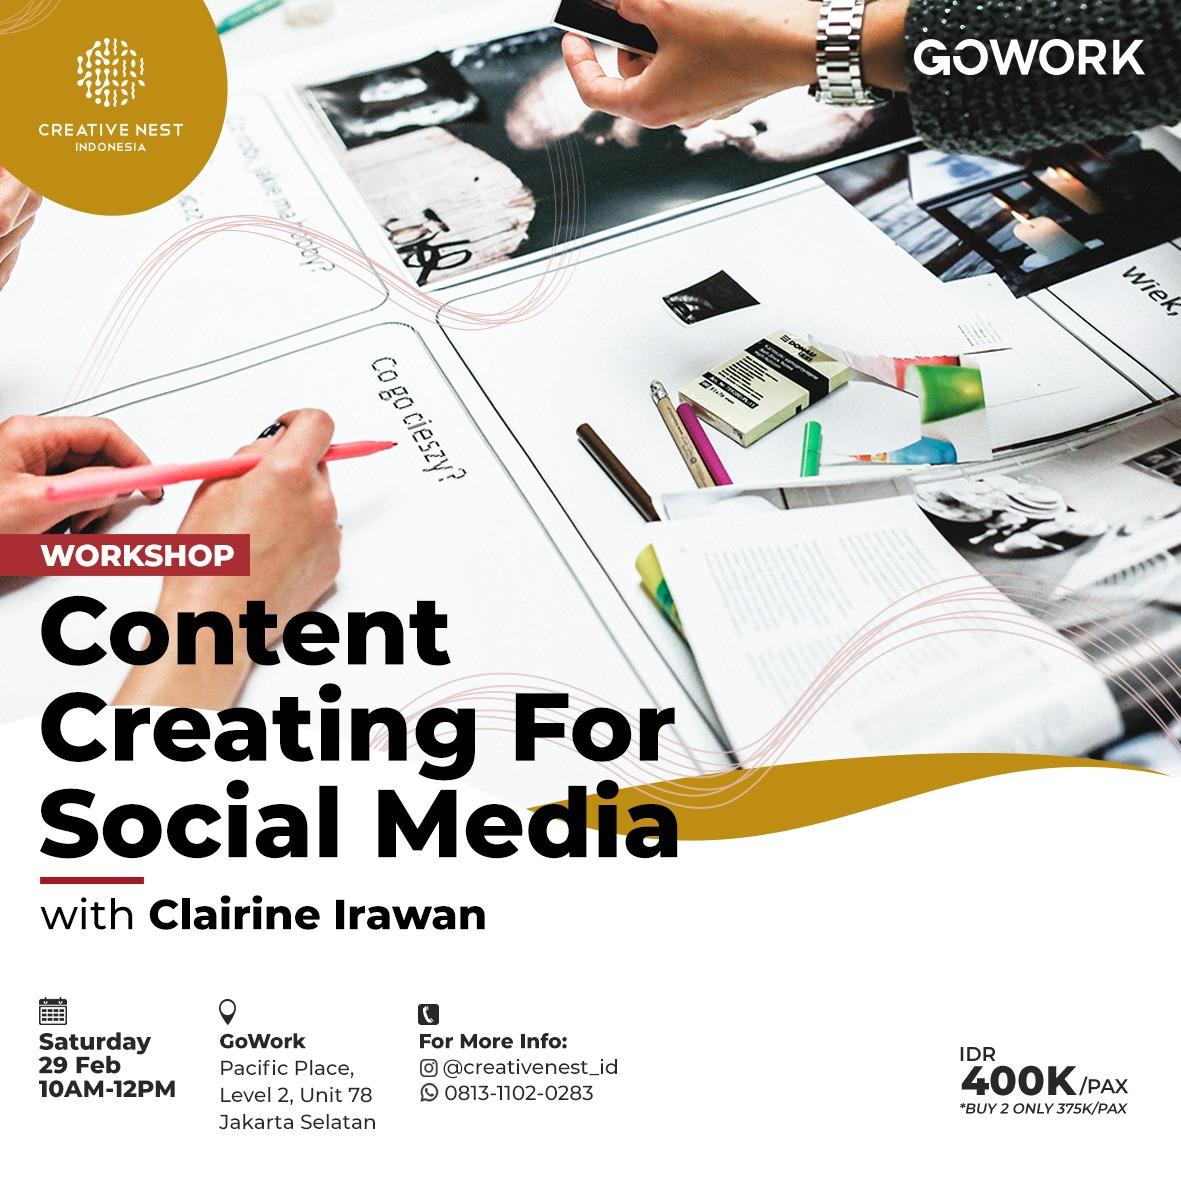 Creative Nest Indonesia : Content Creating for Social Media